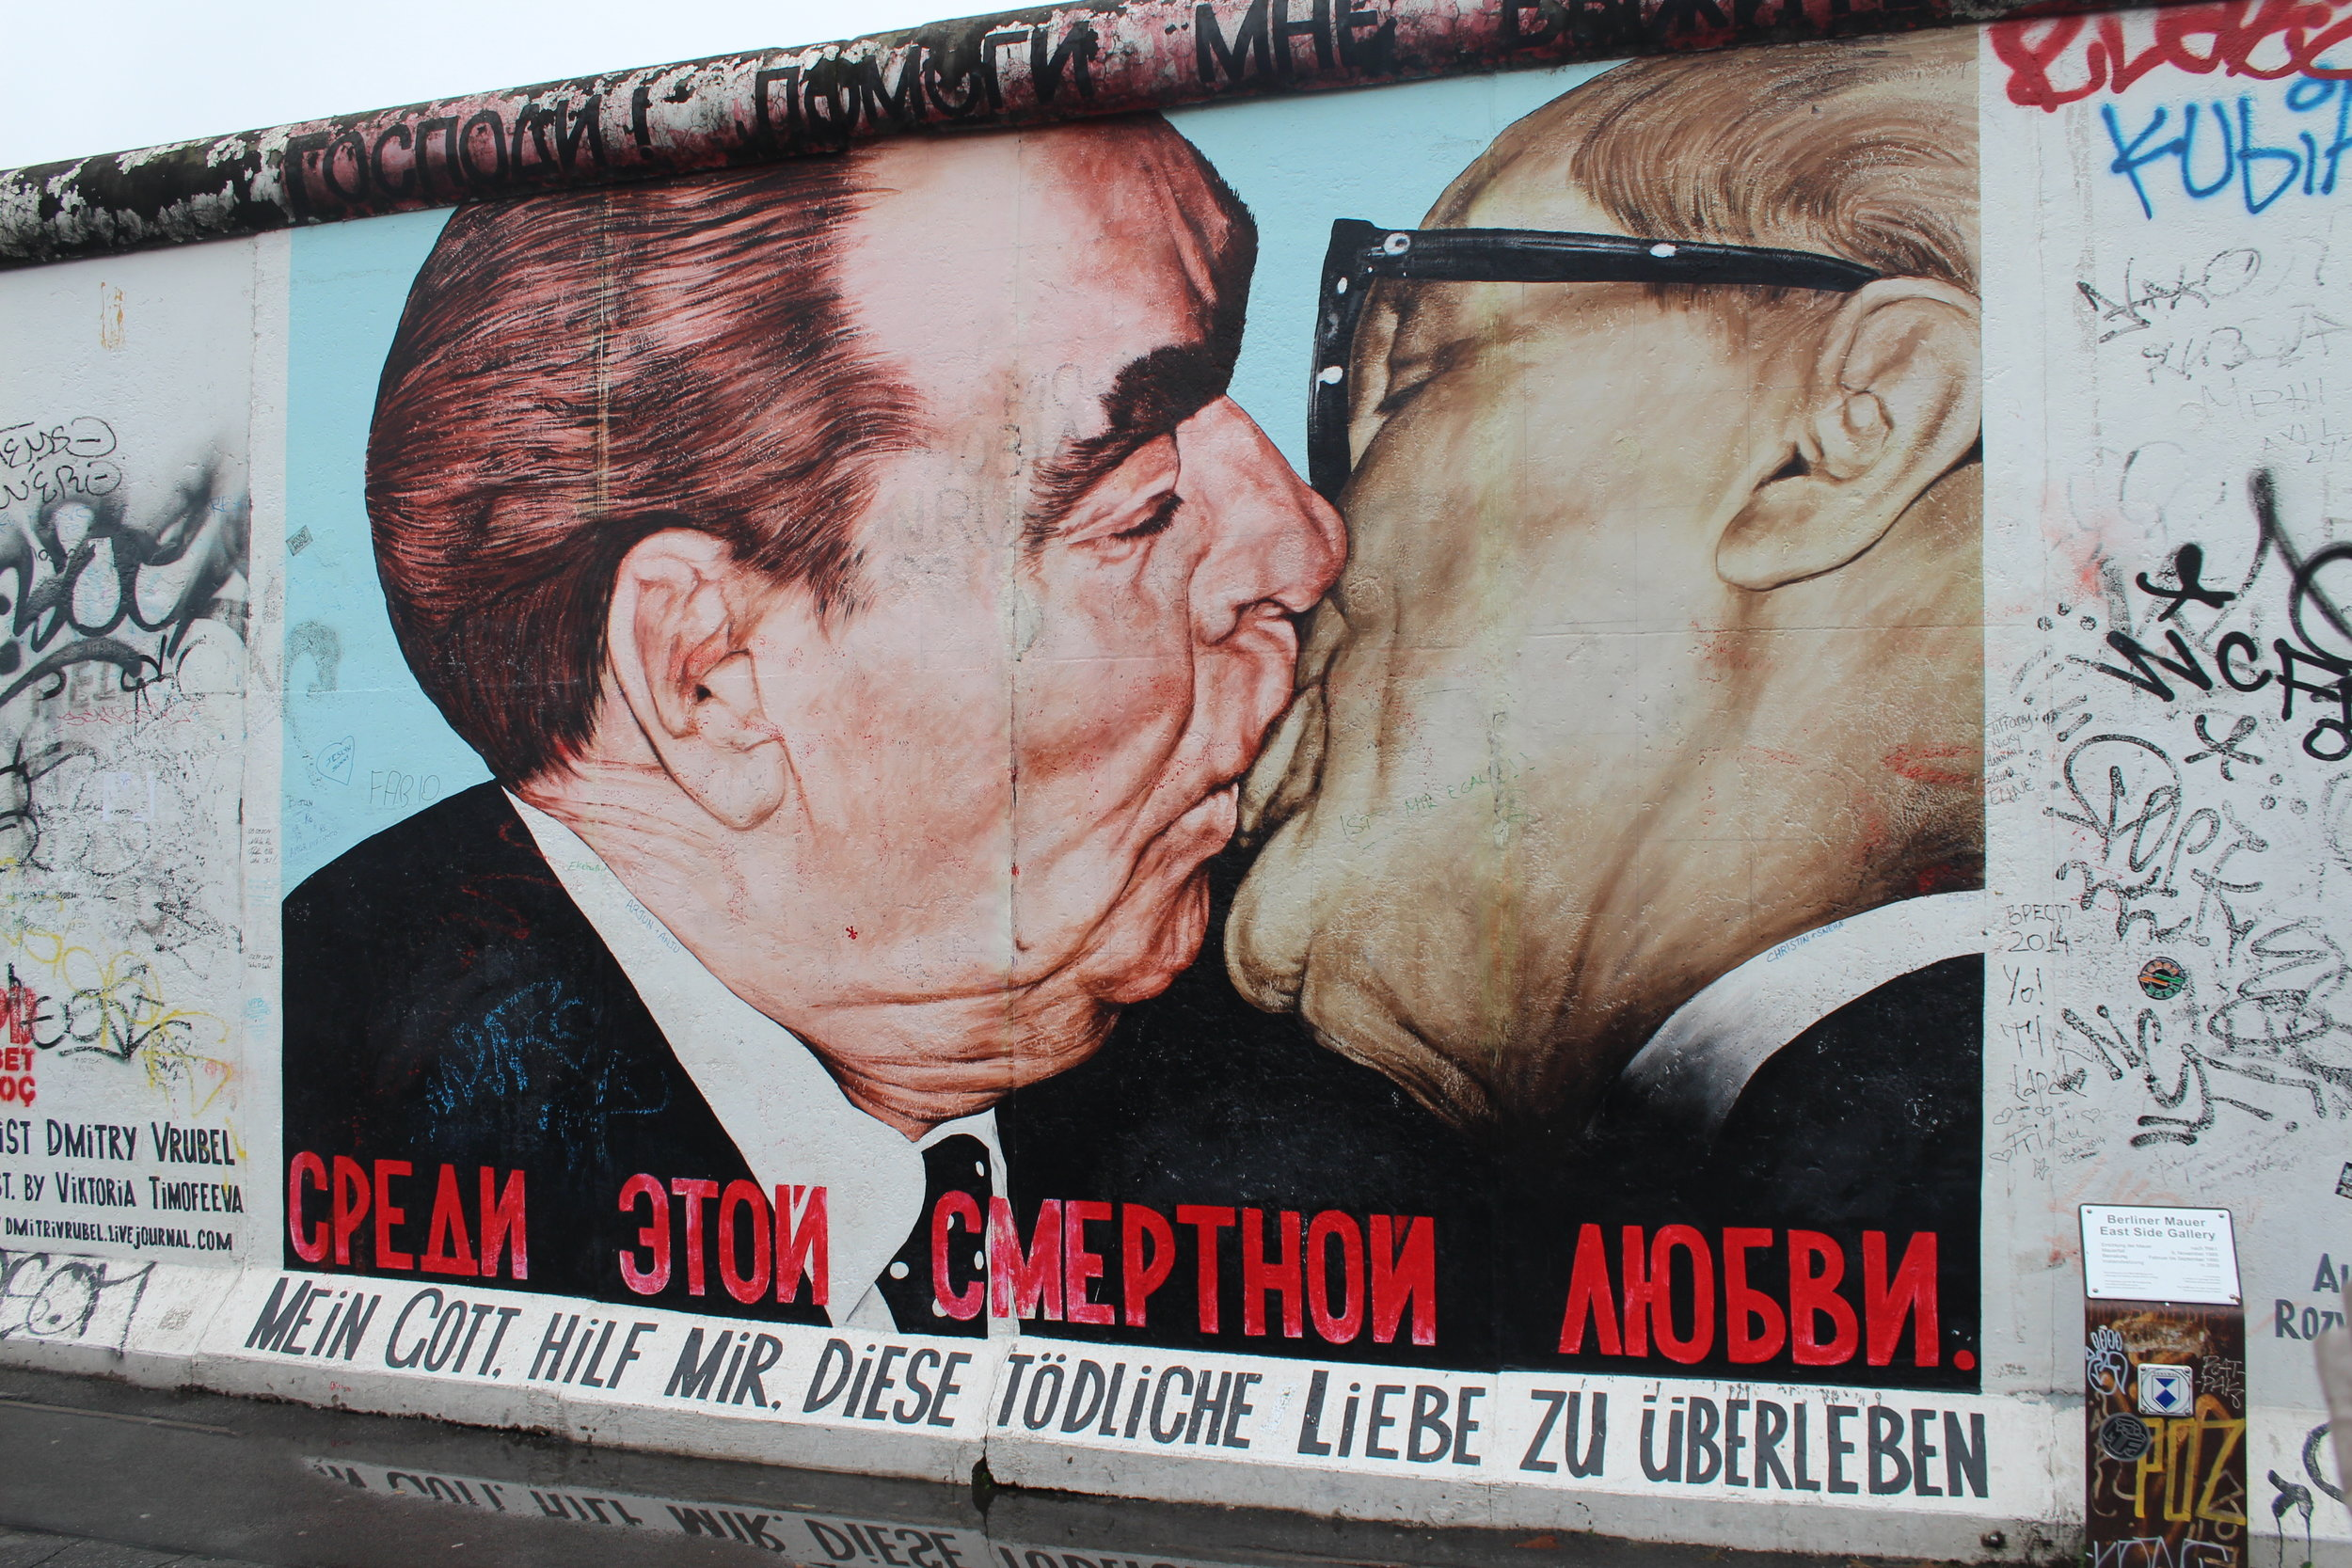 """Here it is. The famous painting of two men kissing. The painting that people crowded around with their selfie sticks, ipads, phones and DSLRs. Yes, lots of people kissed in front of it - we saw three couples take kissing photos in the space of a minute. And yes, it is even more amazing in the """"flesh""""/on the wall.  The painting, """"Mein Gott hilf mir, diese tödliche Liebe zu überleben"""" (translated to """"My God, help me to survive this deadly love"""" in English) was painted by Dmitri Wrubel. It depicts an iconic photograph of Leonid Brezhnev and Erich Honecker in a socialist fraternal kiss, taken by Régis Bossu in East Berlin on October 7, 1979."""